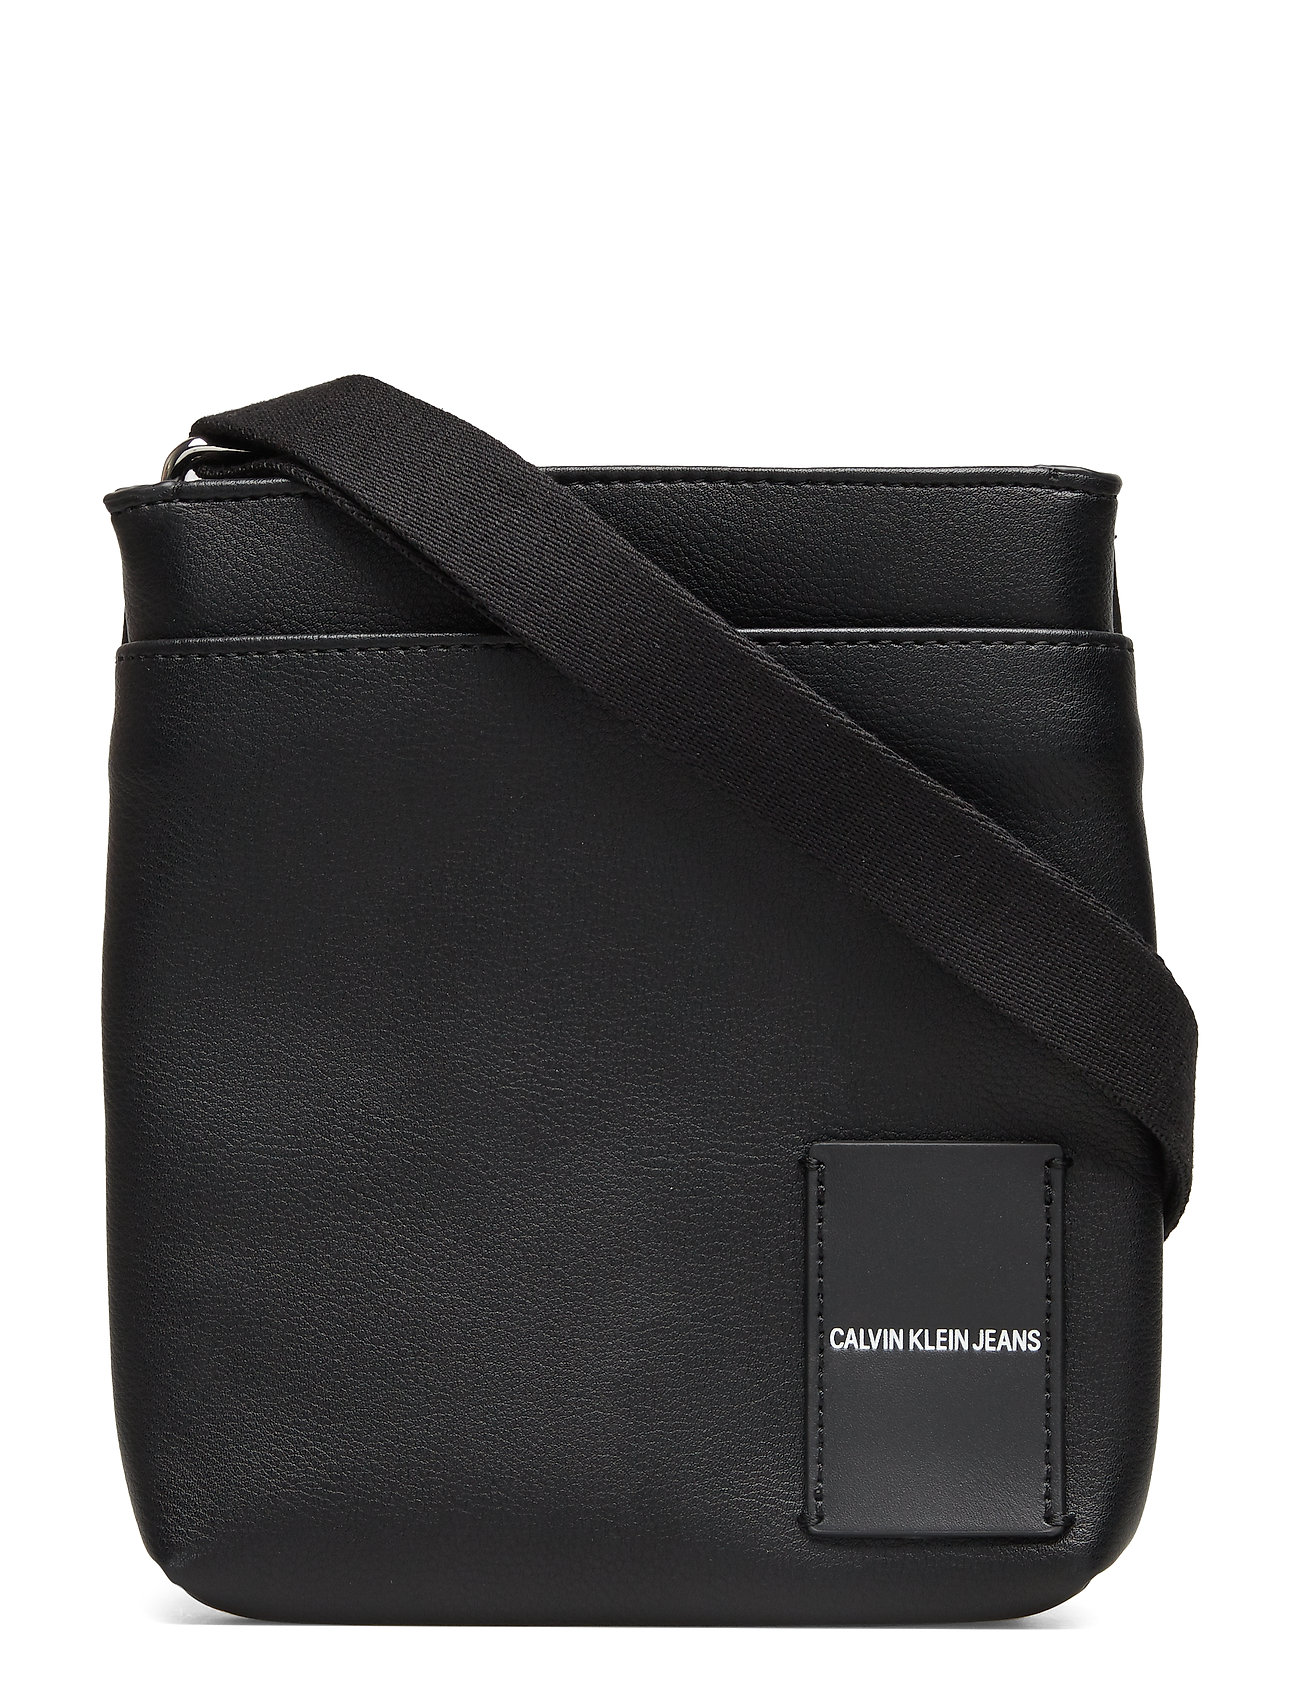 Calvin Klein COATED CANVAS MICRO FLAT PACK - BLACK